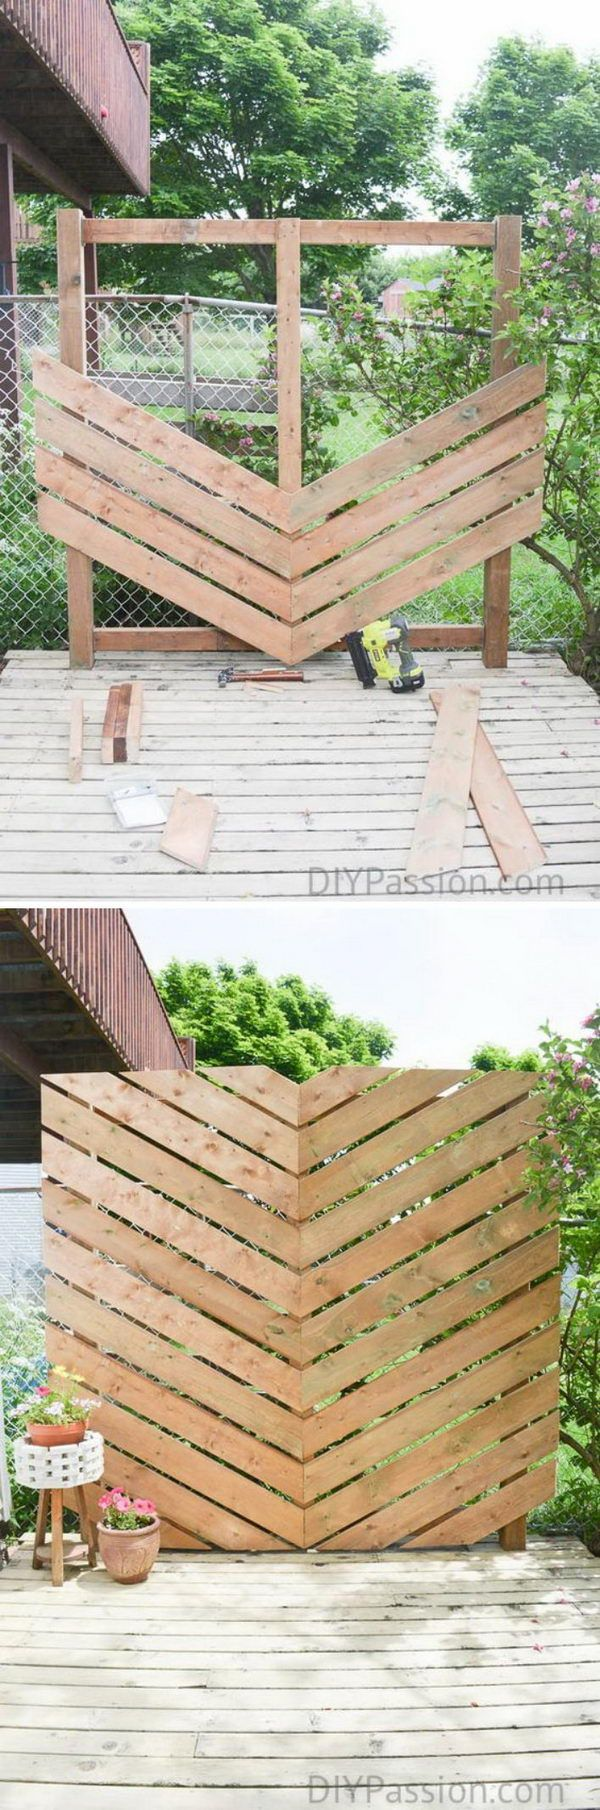 Merveilleux Inspire Your Outdoor With A Simple Chevron Privacy Wall.